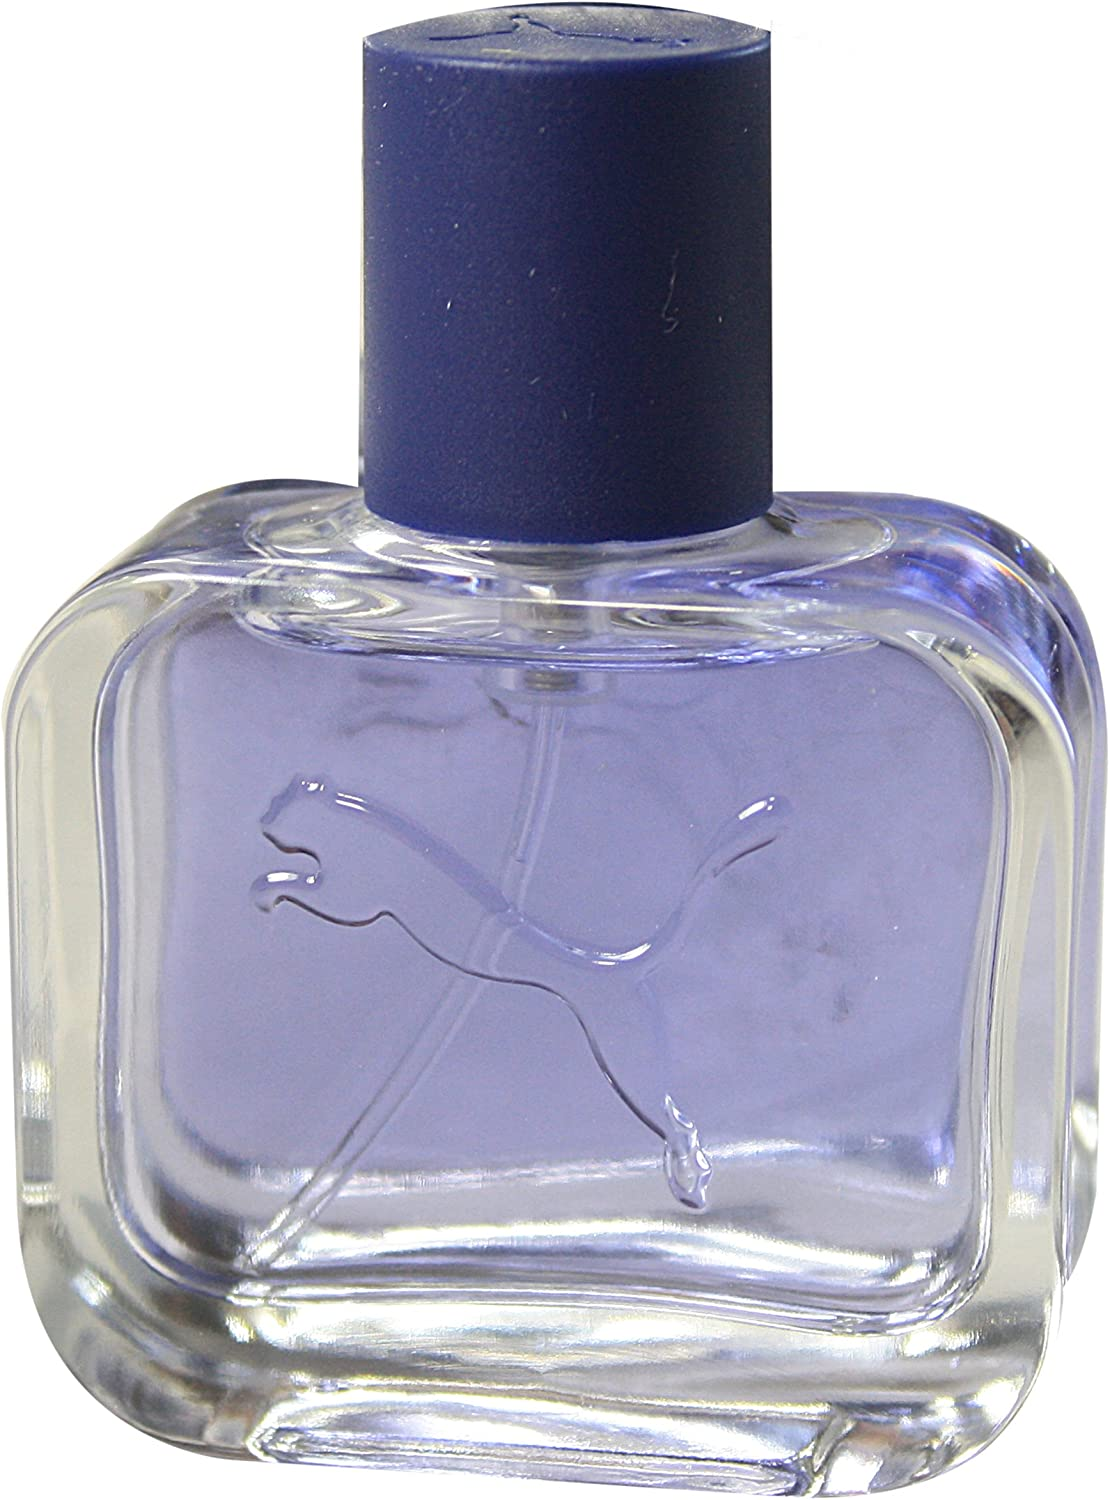 Están deprimidos santo Volver a disparar  Puma Flowing Male Eau de Toilette Perfume 20 ml: Amazon.co.uk: Beauty